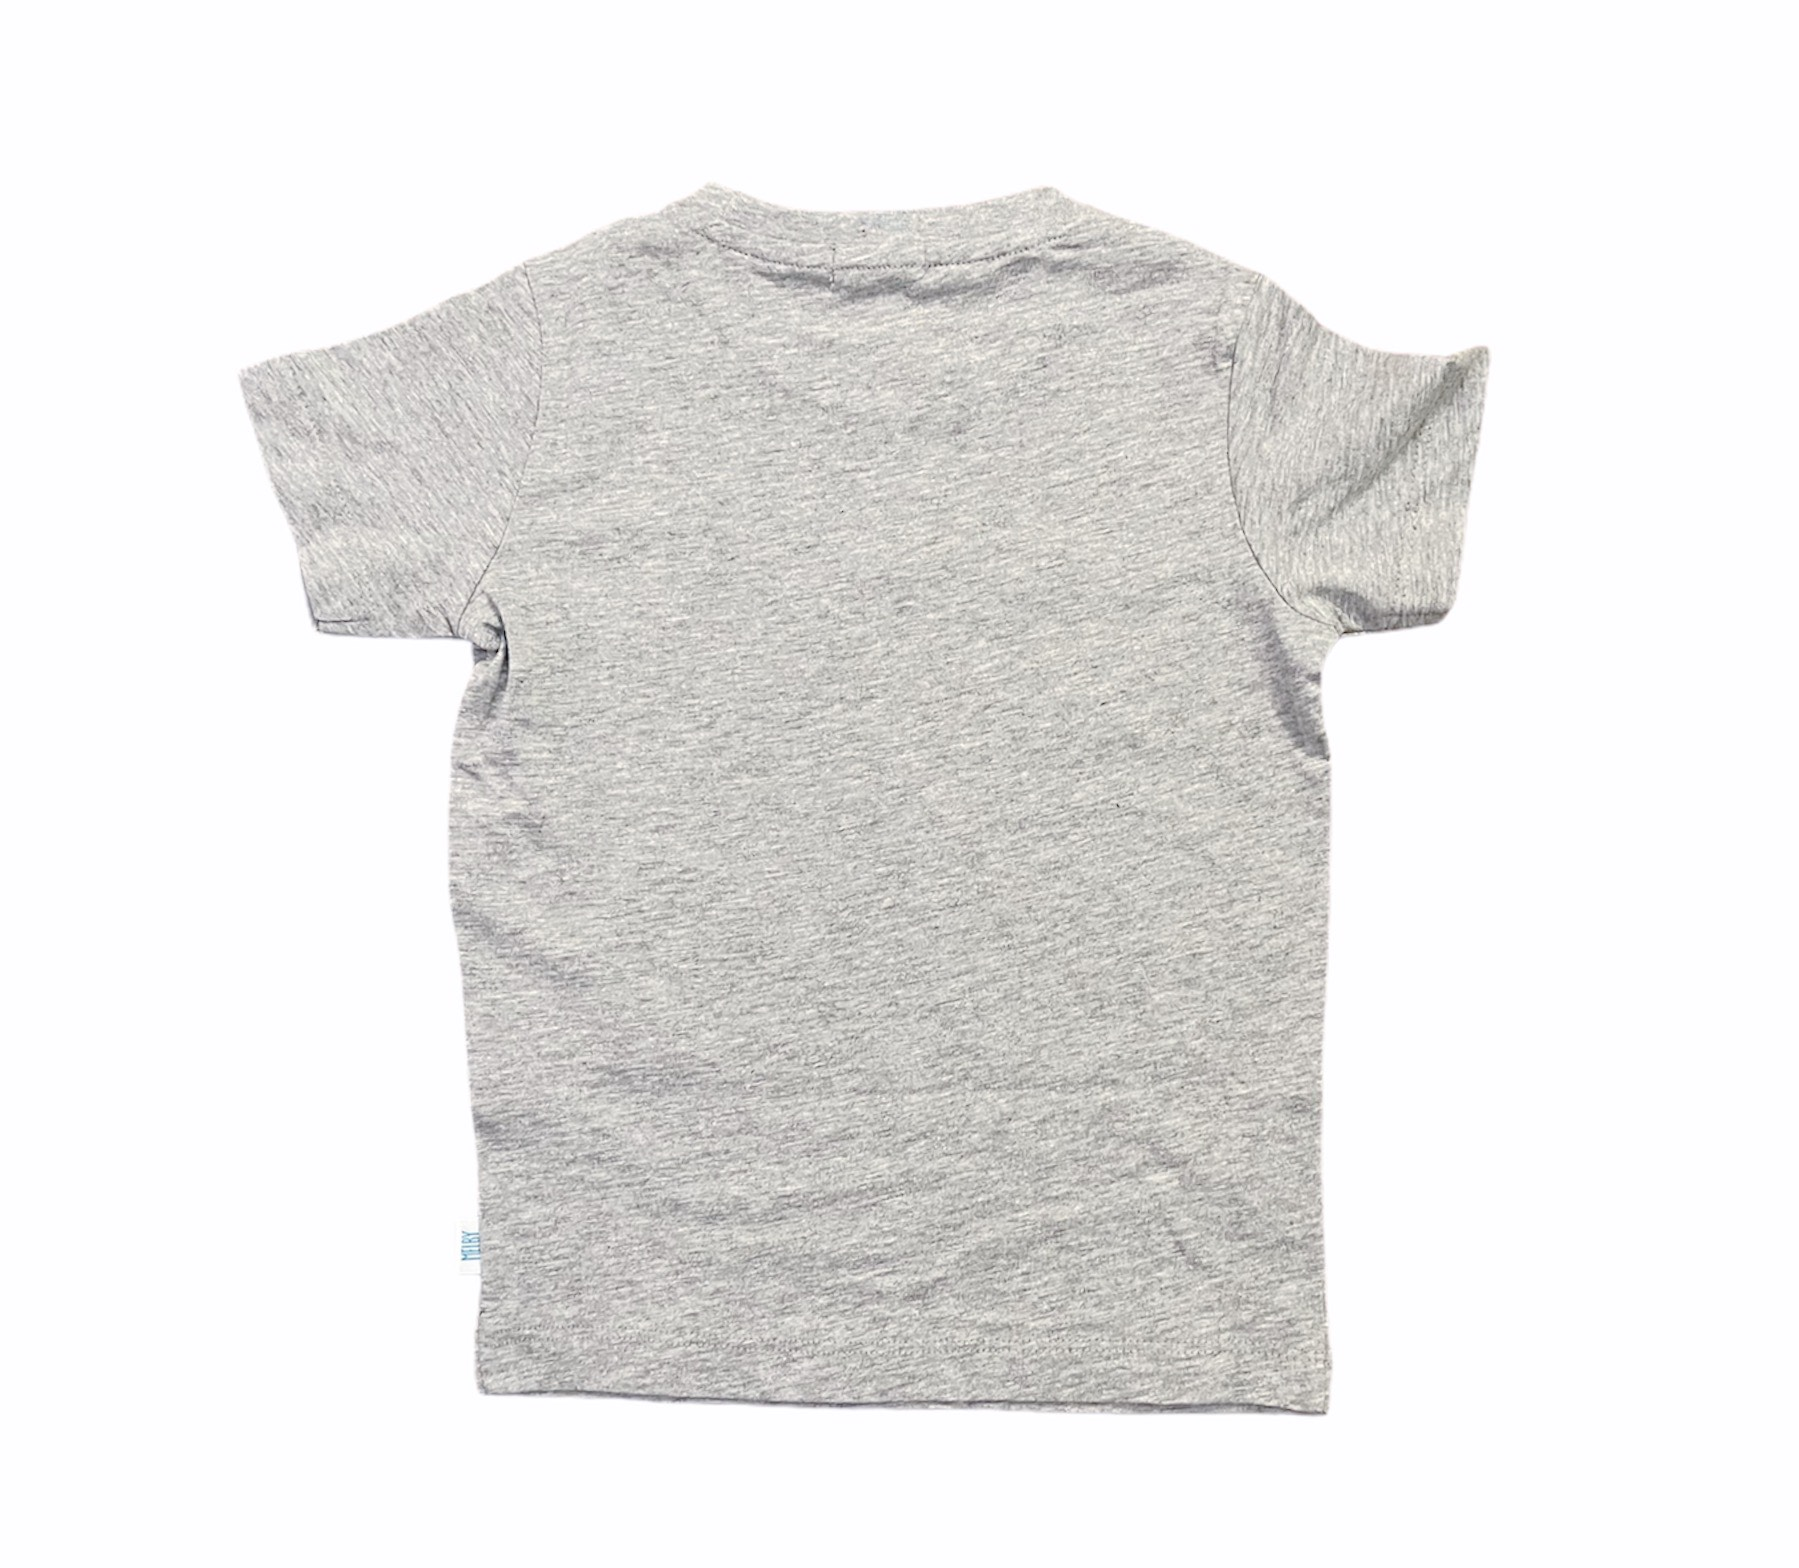 T-SHIRT MELBY BRAVE PLAYERS GRIGIO 2